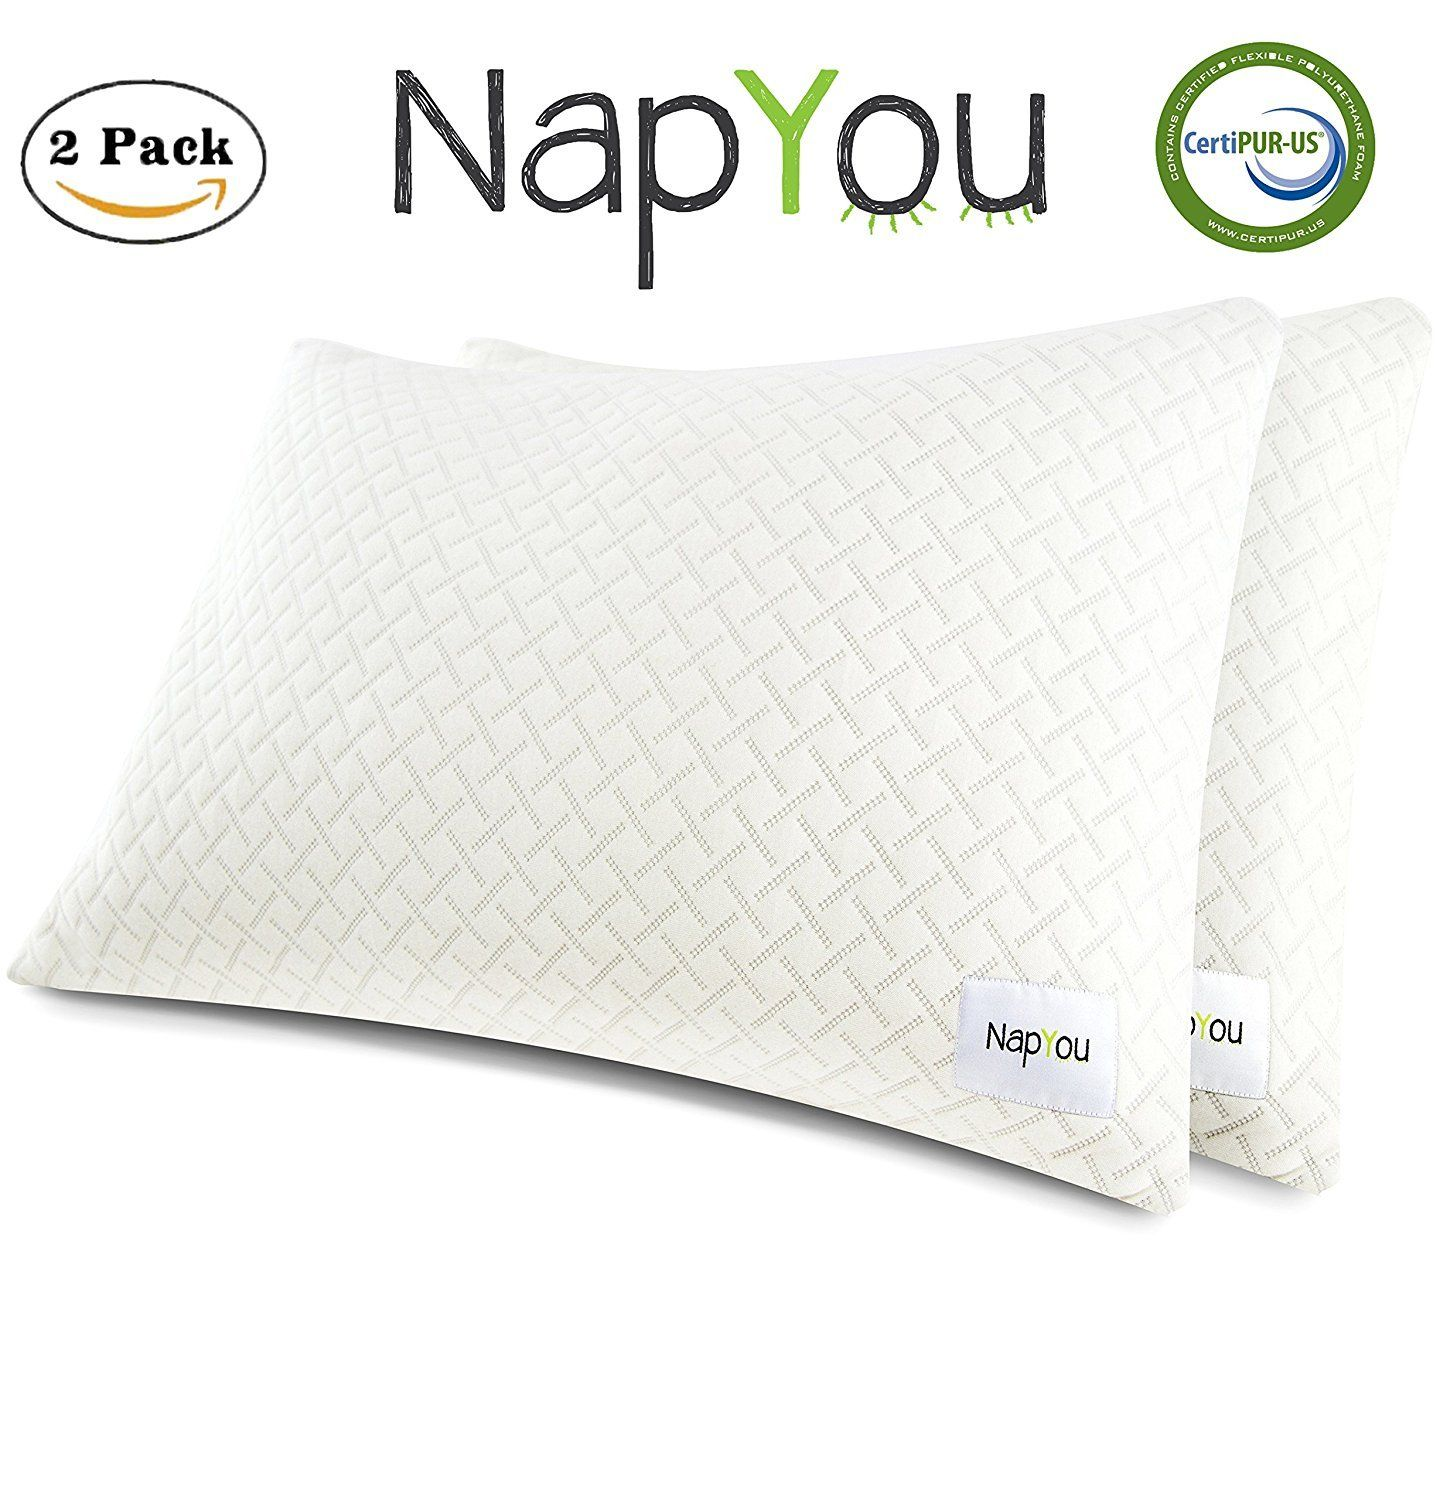 Napyou official amazon exclusive pack shredded certipur memory